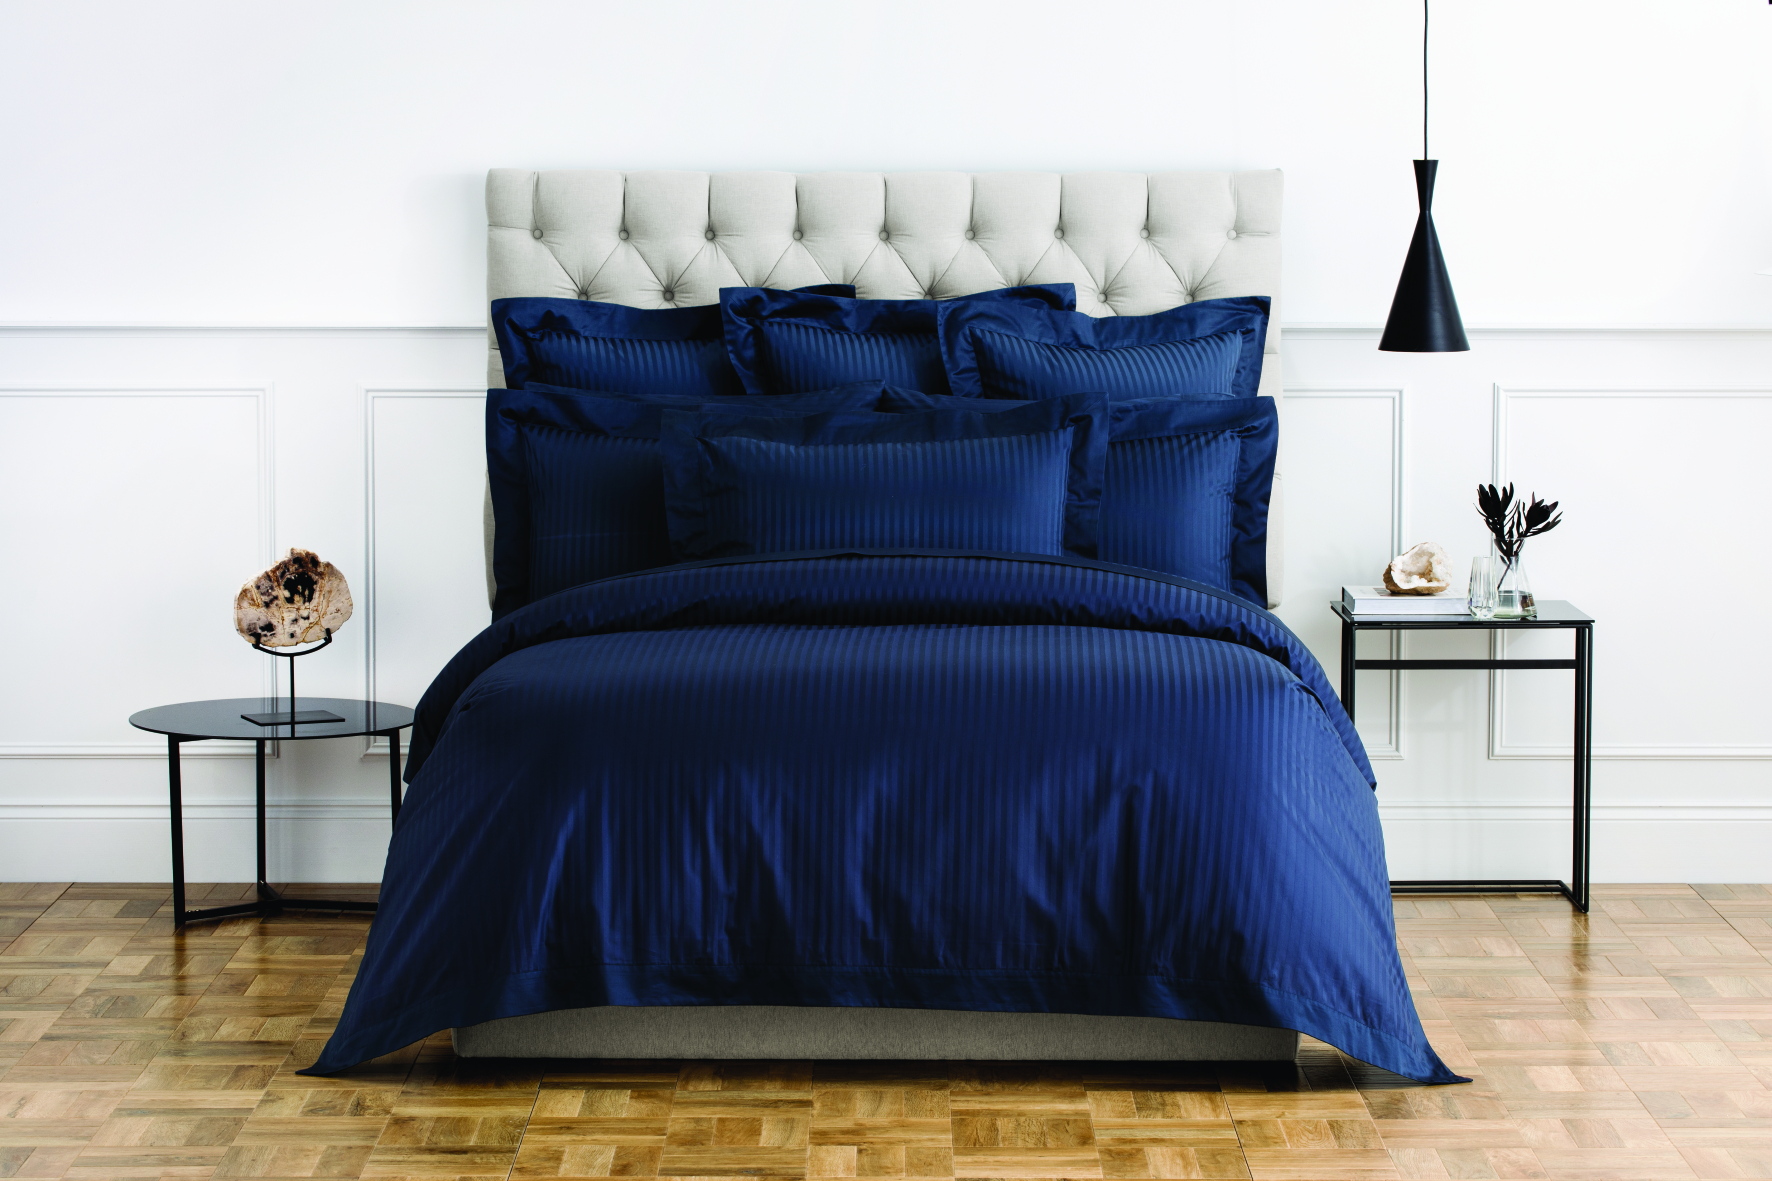 Millennia Super King Tailored Quilt Cover in Midnight